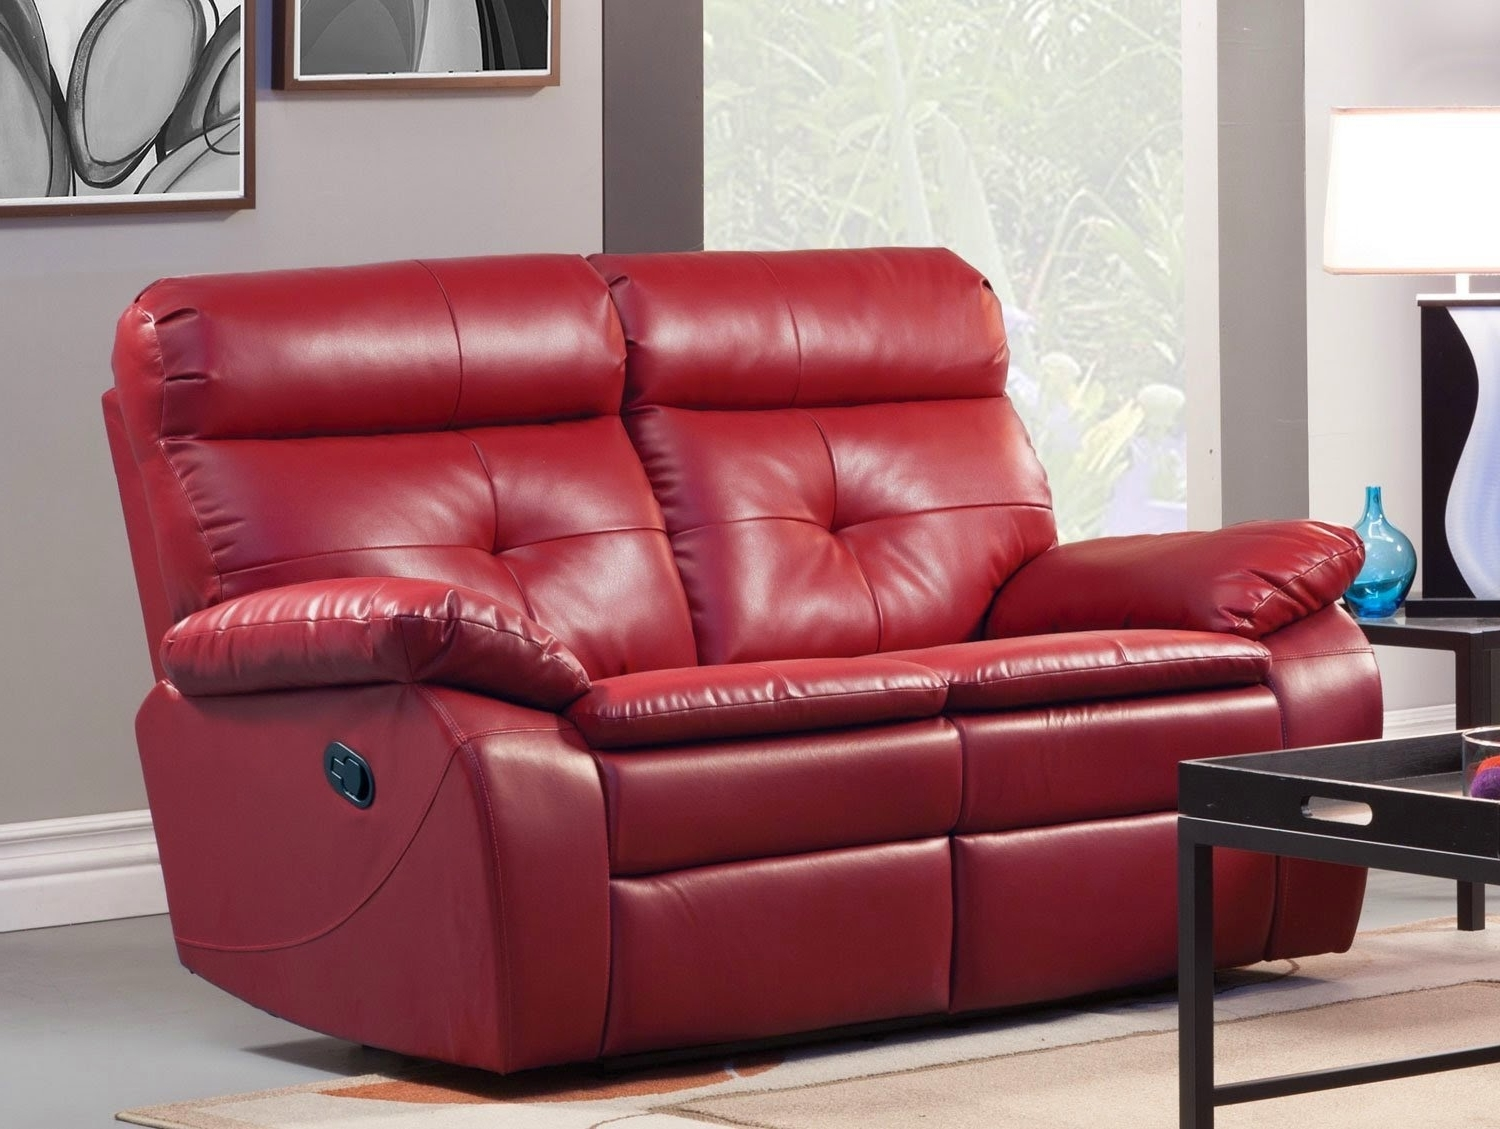 2018 2 Seater Recliner Leather Sofas With Cheap Reclining Sofas Sale: 2 Seater Leather Recliner Sofa Sale (View 14 of 20)